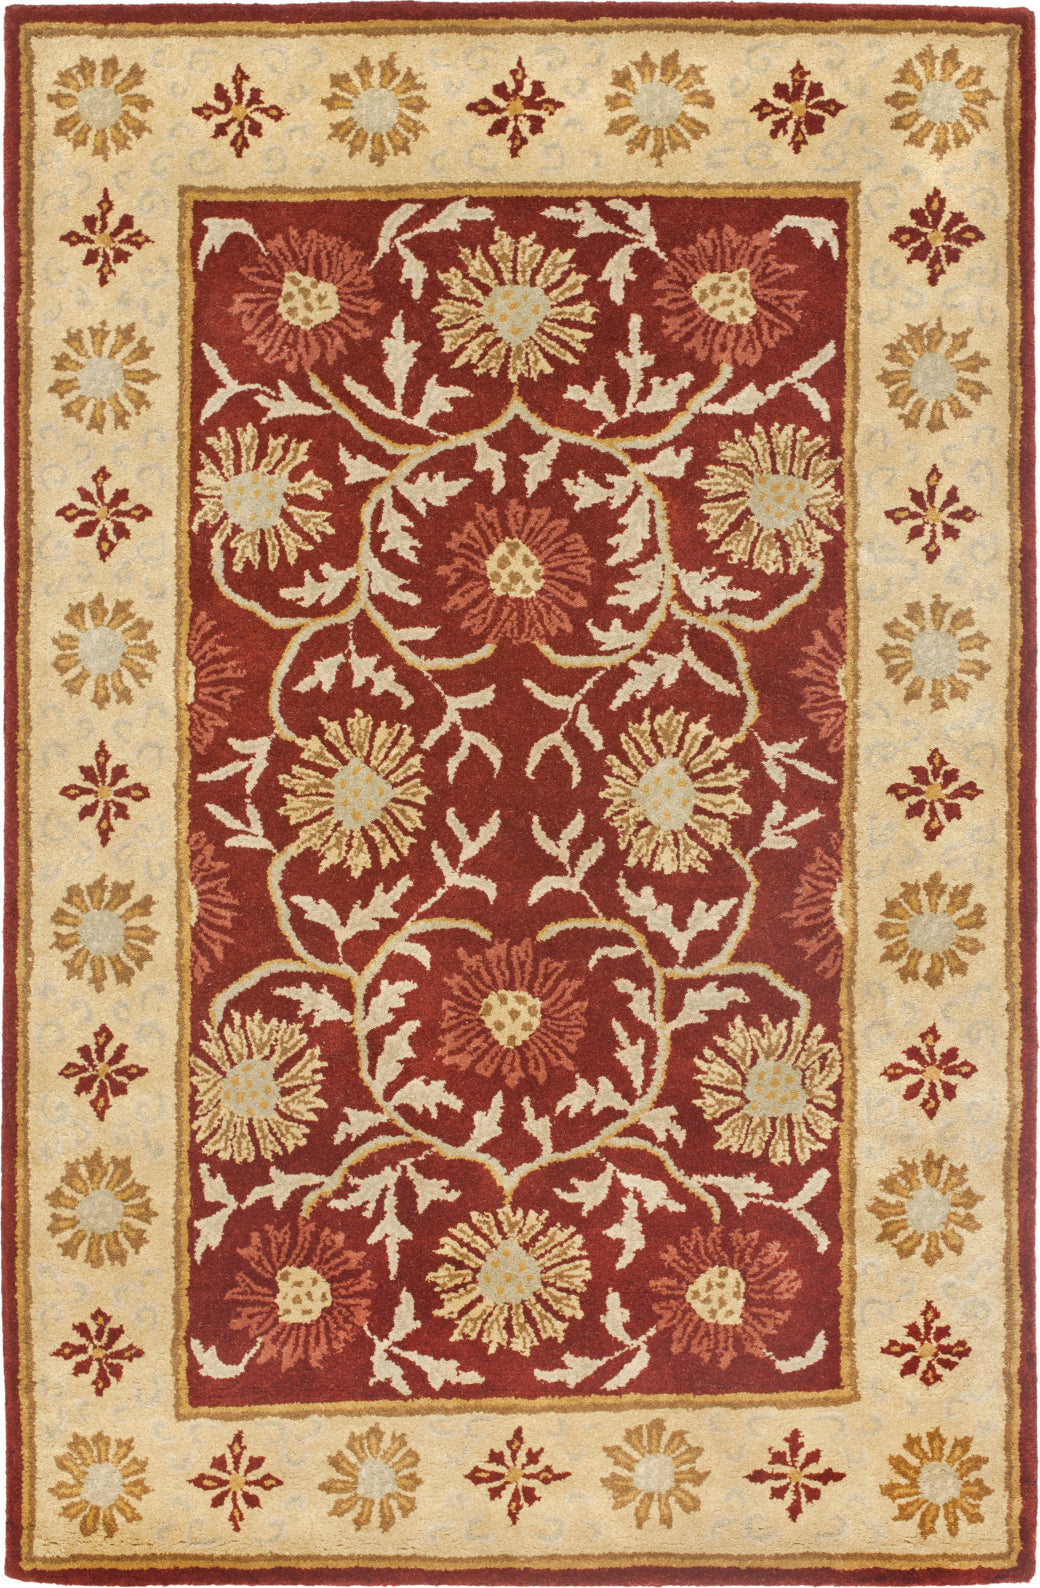 Safavieh Heritage 970 Red/Beige Area Rug main image